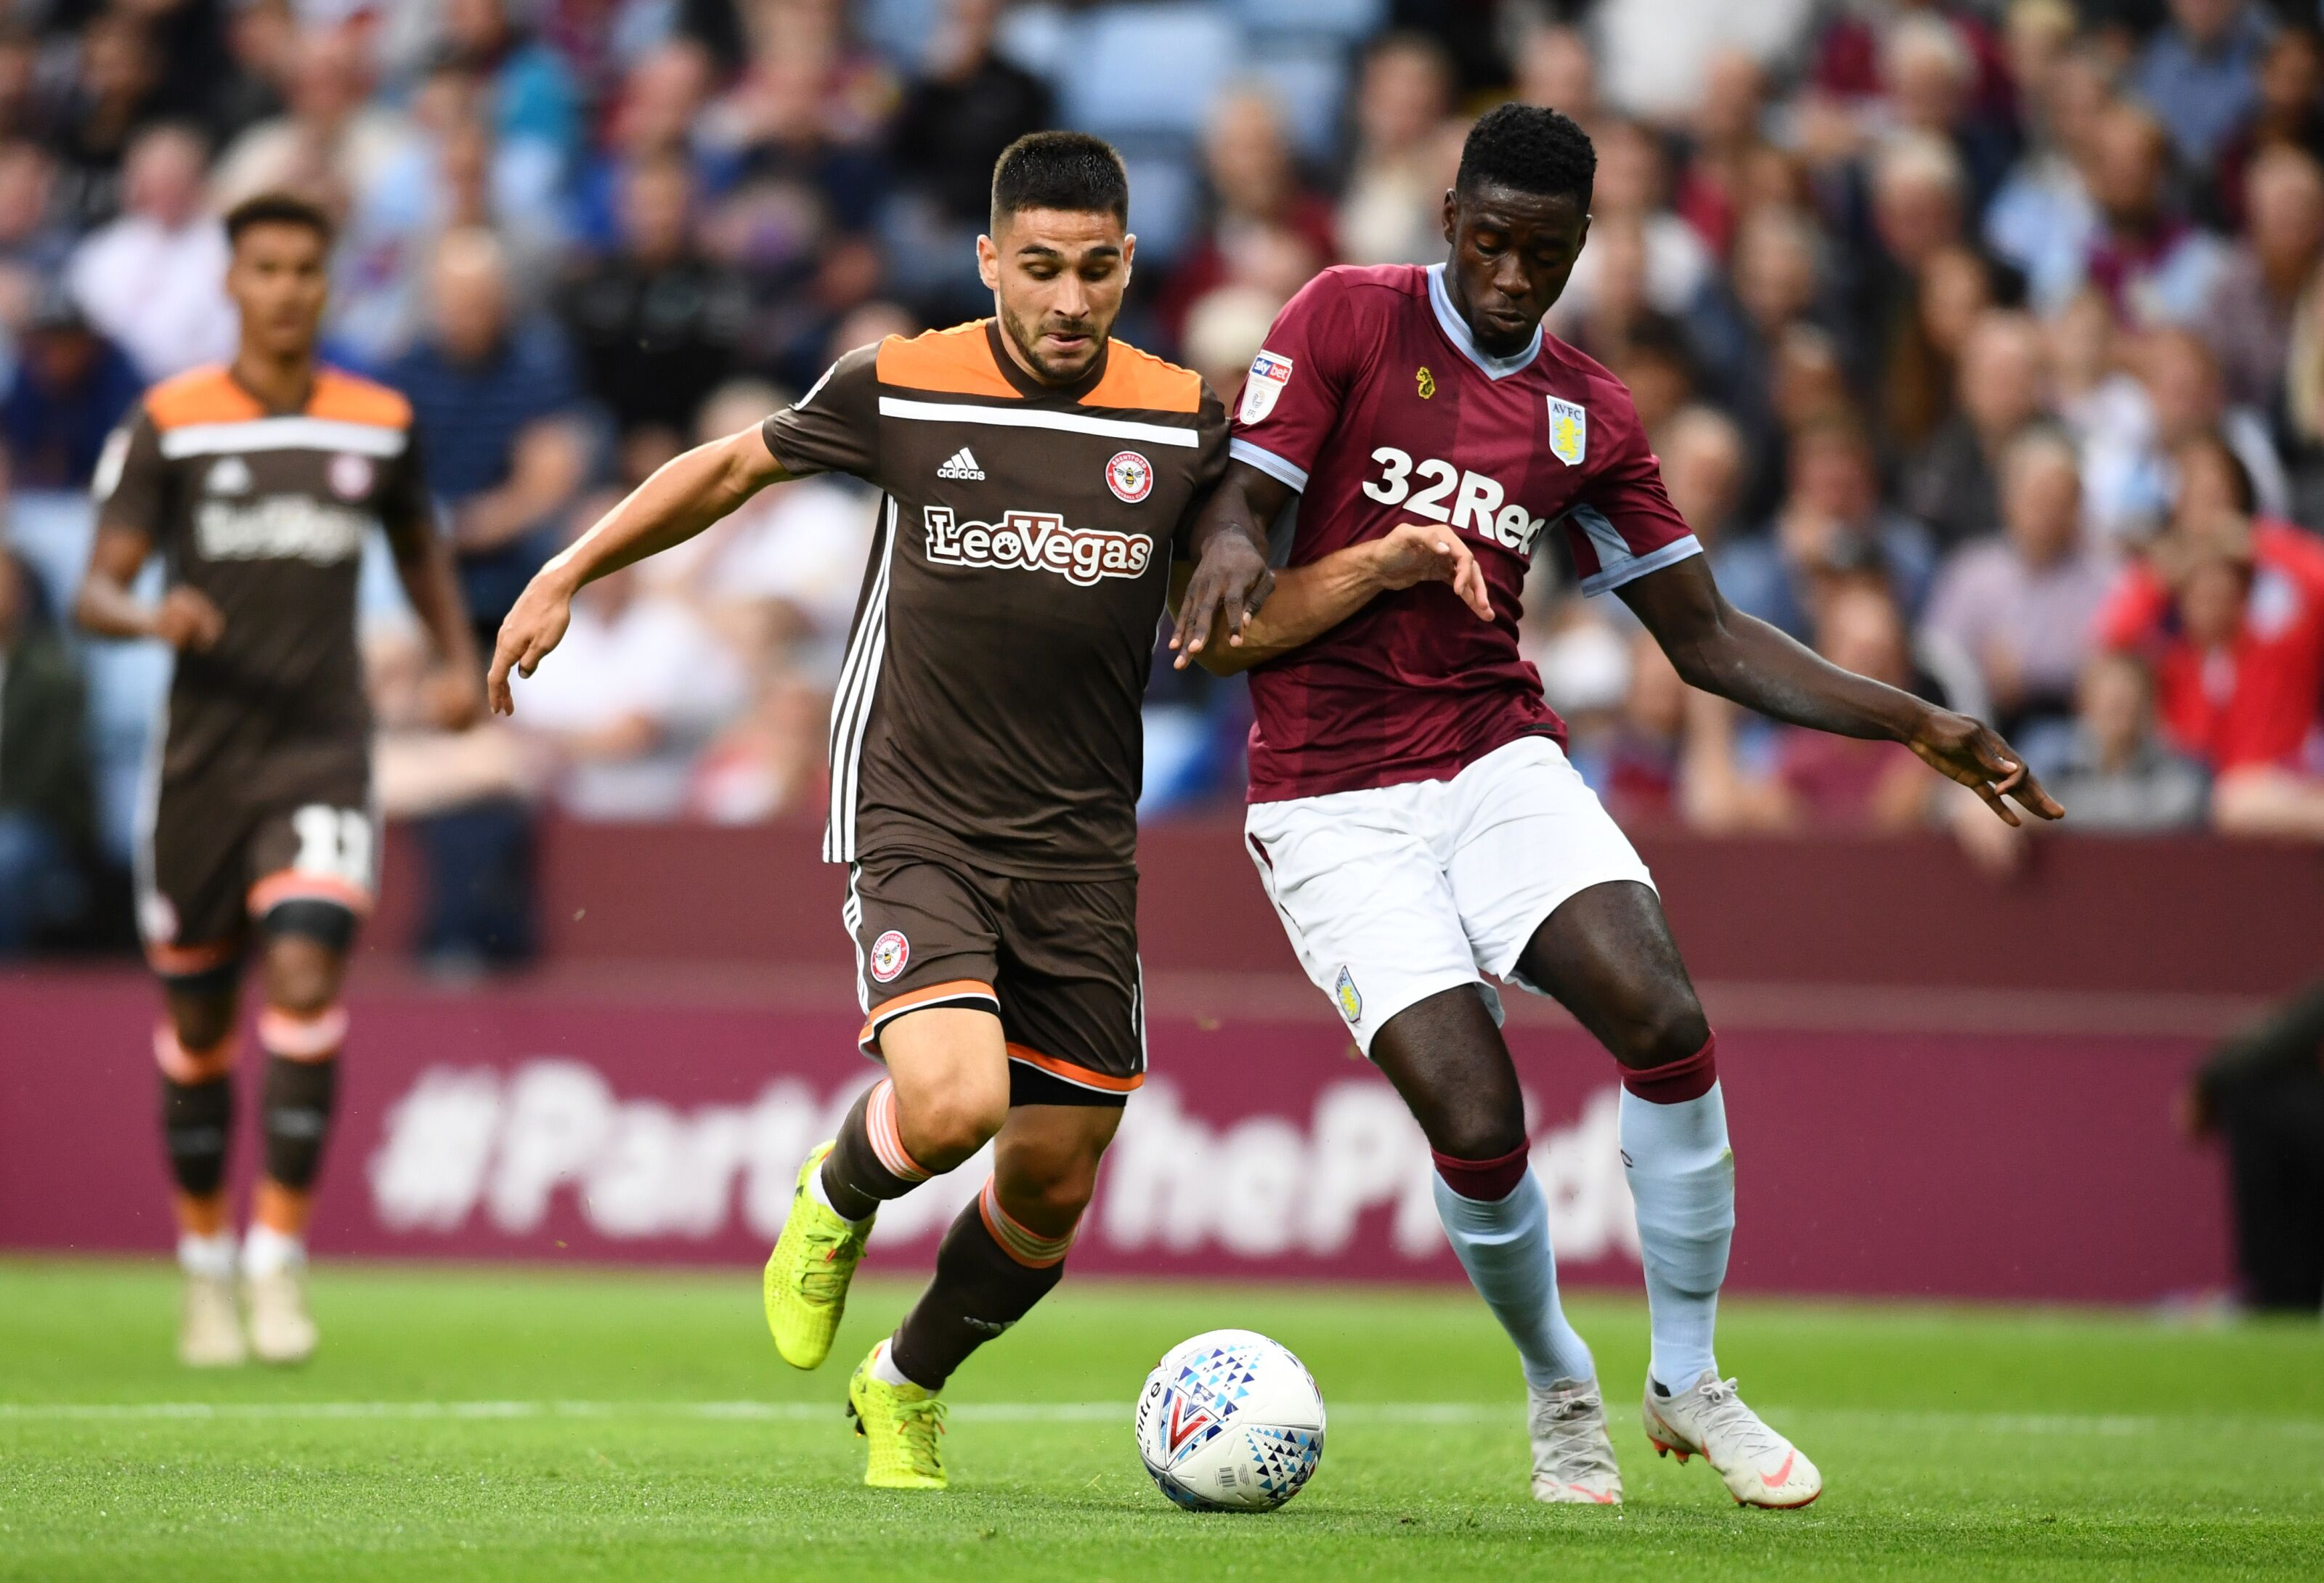 Aston Villa vs. Rotherham United: Predicted lineup and streaming options